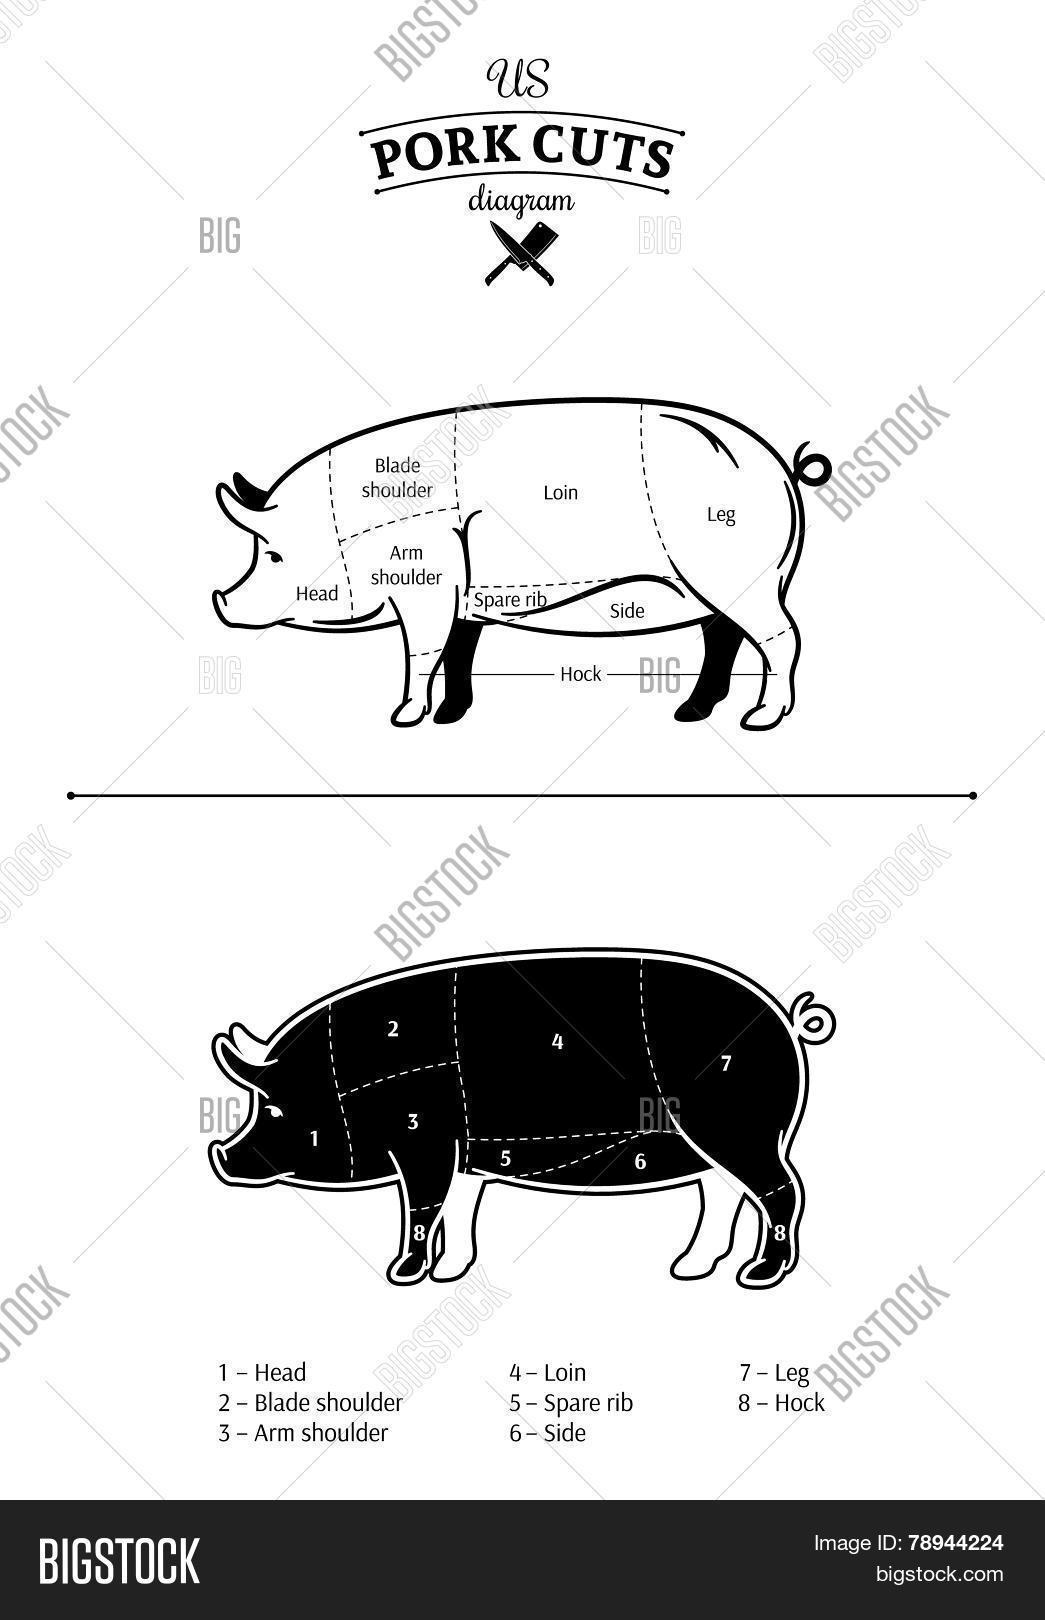 hight resolution of american us pork cuts diagram